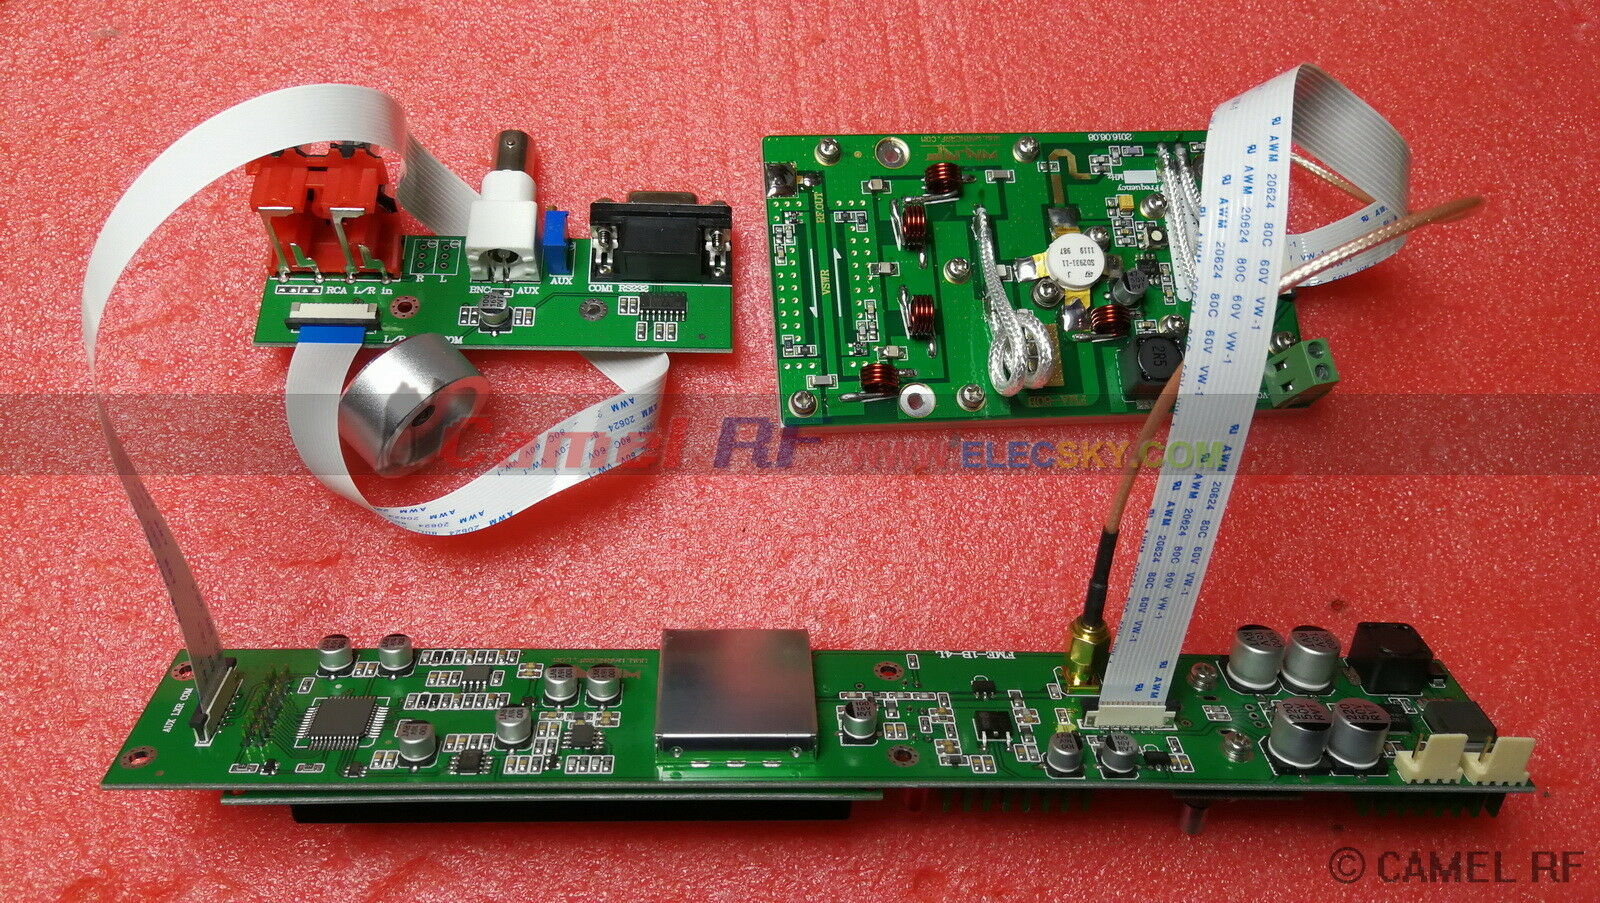 0 80w Radio Broadcast Station Fm Transmitter Pcb Kits 34000 Circuit 88 108 Mhz 1w 1 Of 9only 4 Available See More